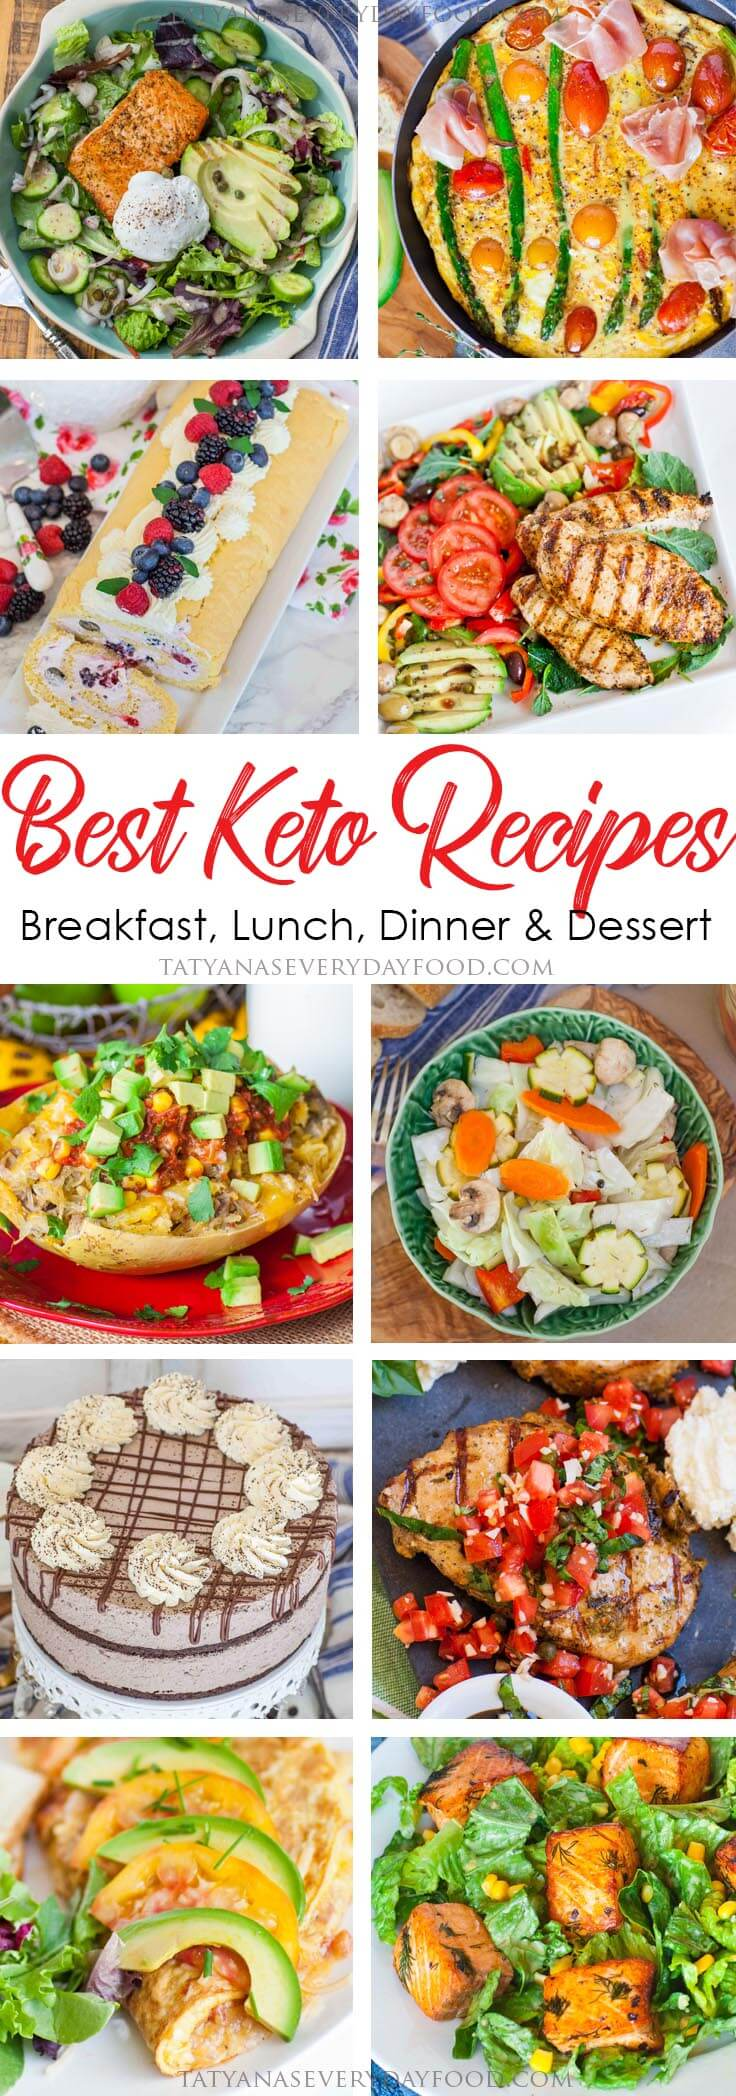 All the best keto recipes in one collection